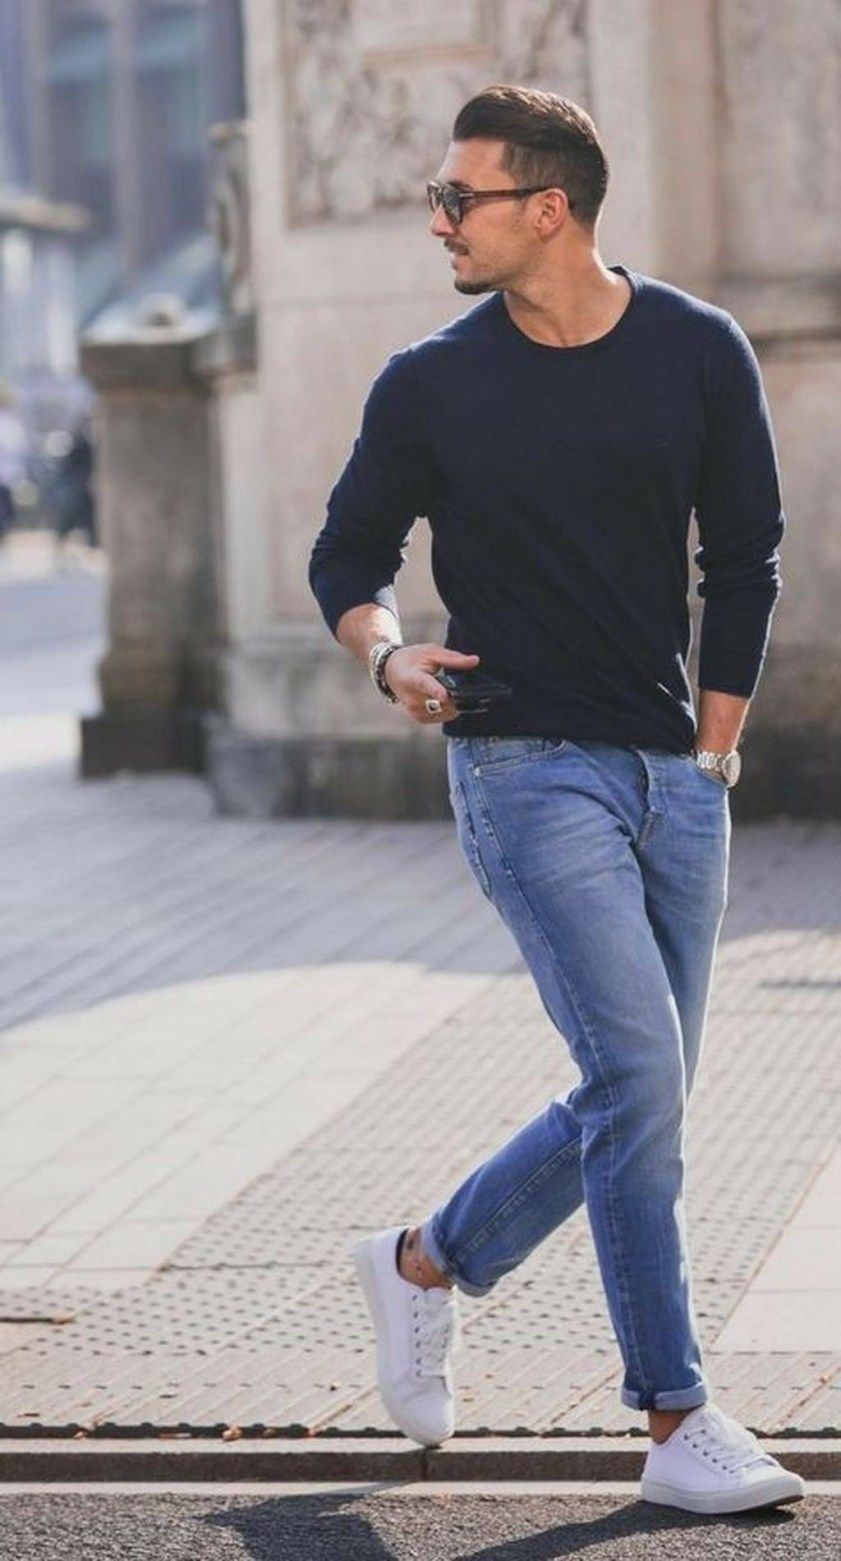 224+ Amazing Outfit Ideas For Men Style - WEAR24TREND  Mens casual